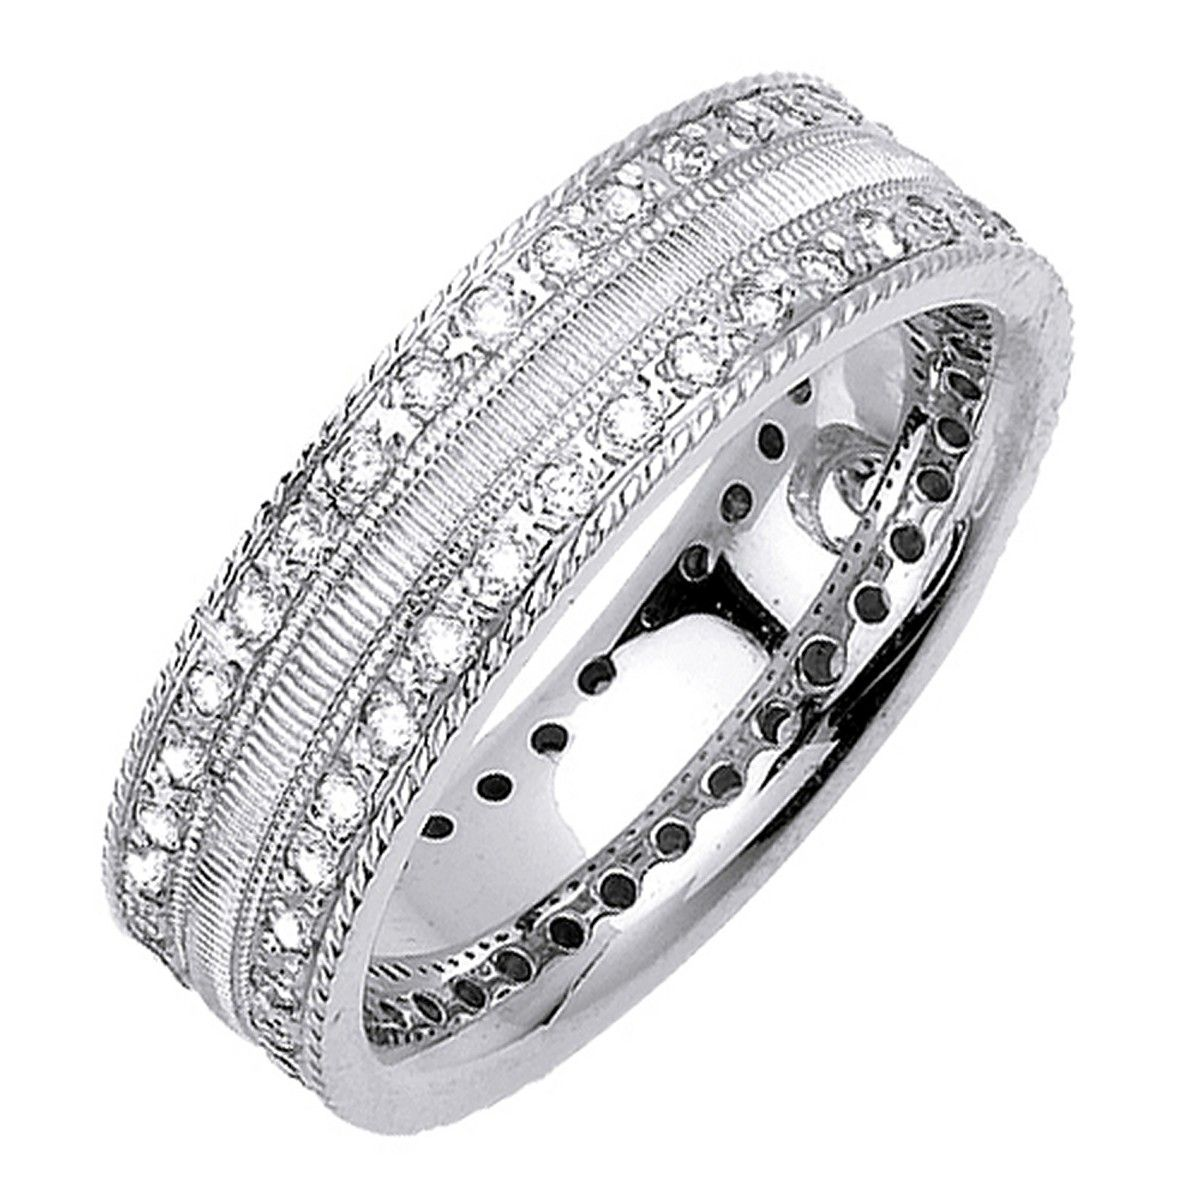 mens diamond wedding bands Reviewing Men s Diamond Wedding Rings Ruth Waddy is Ruthless